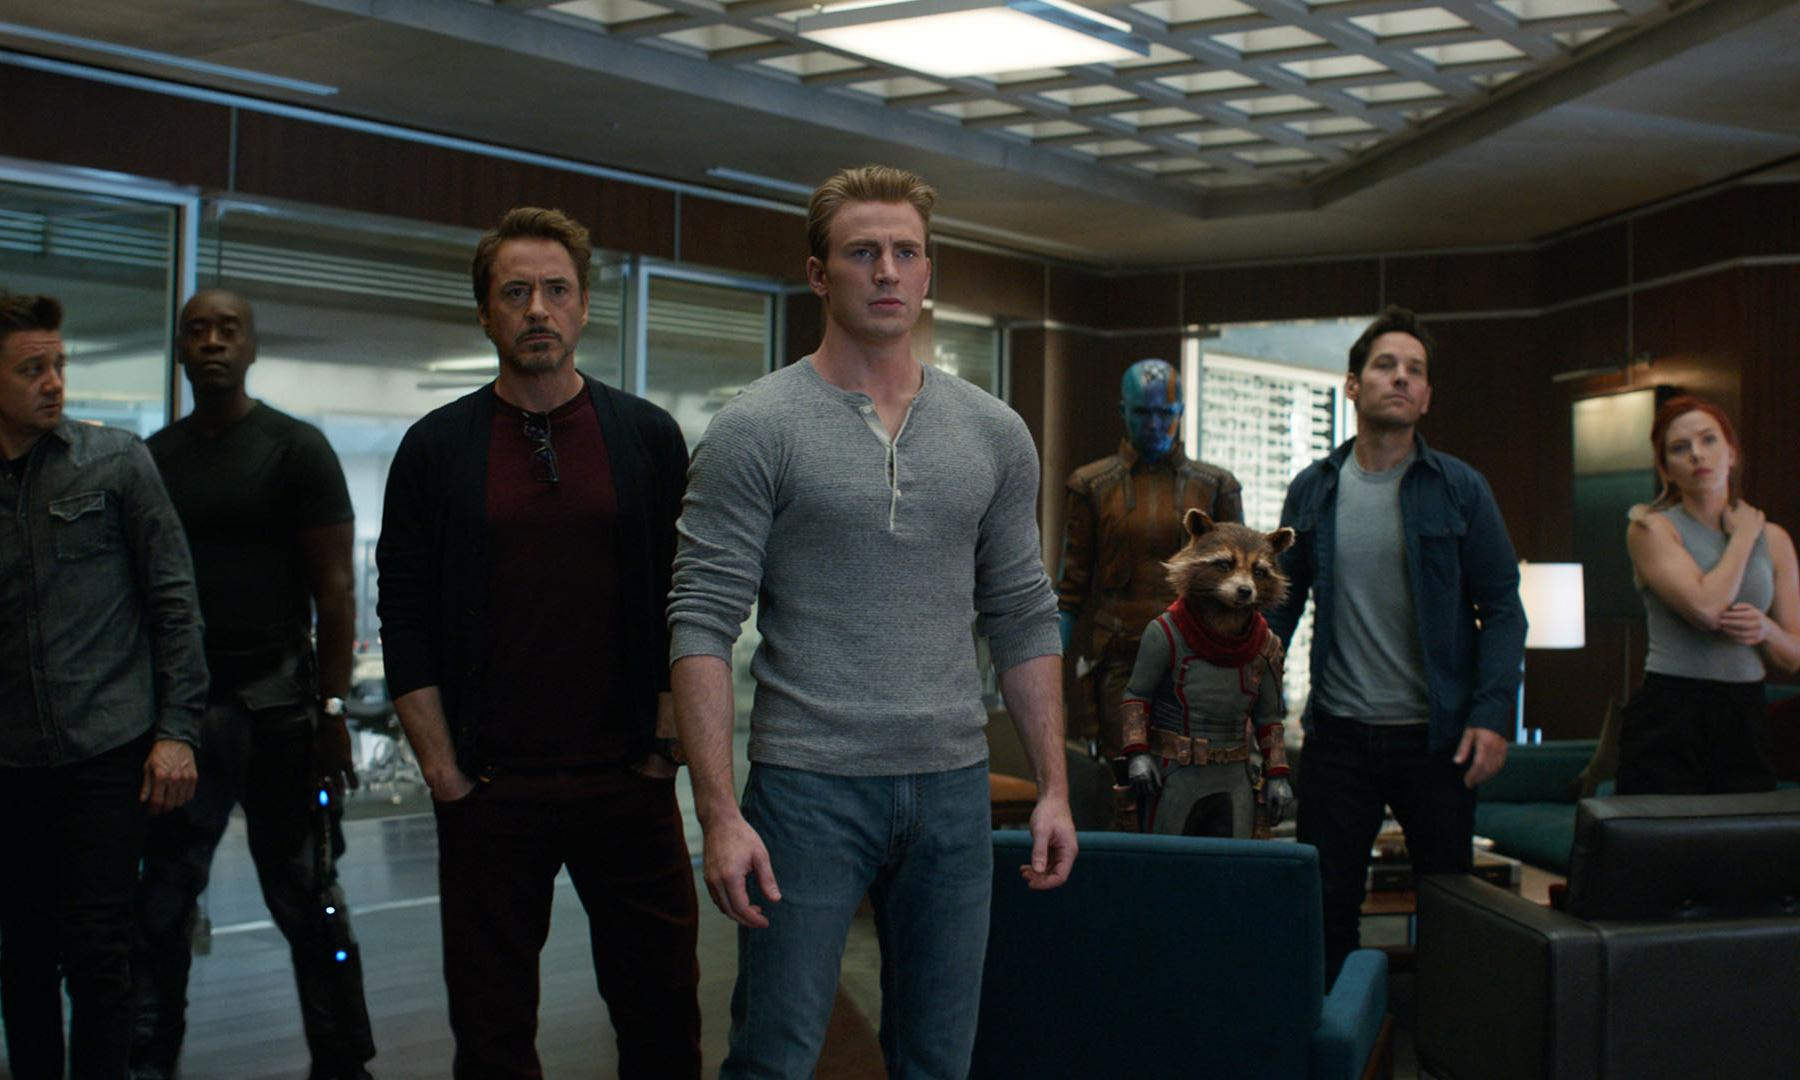 Avengers: Endgame tops Avatar to be highest grossing film